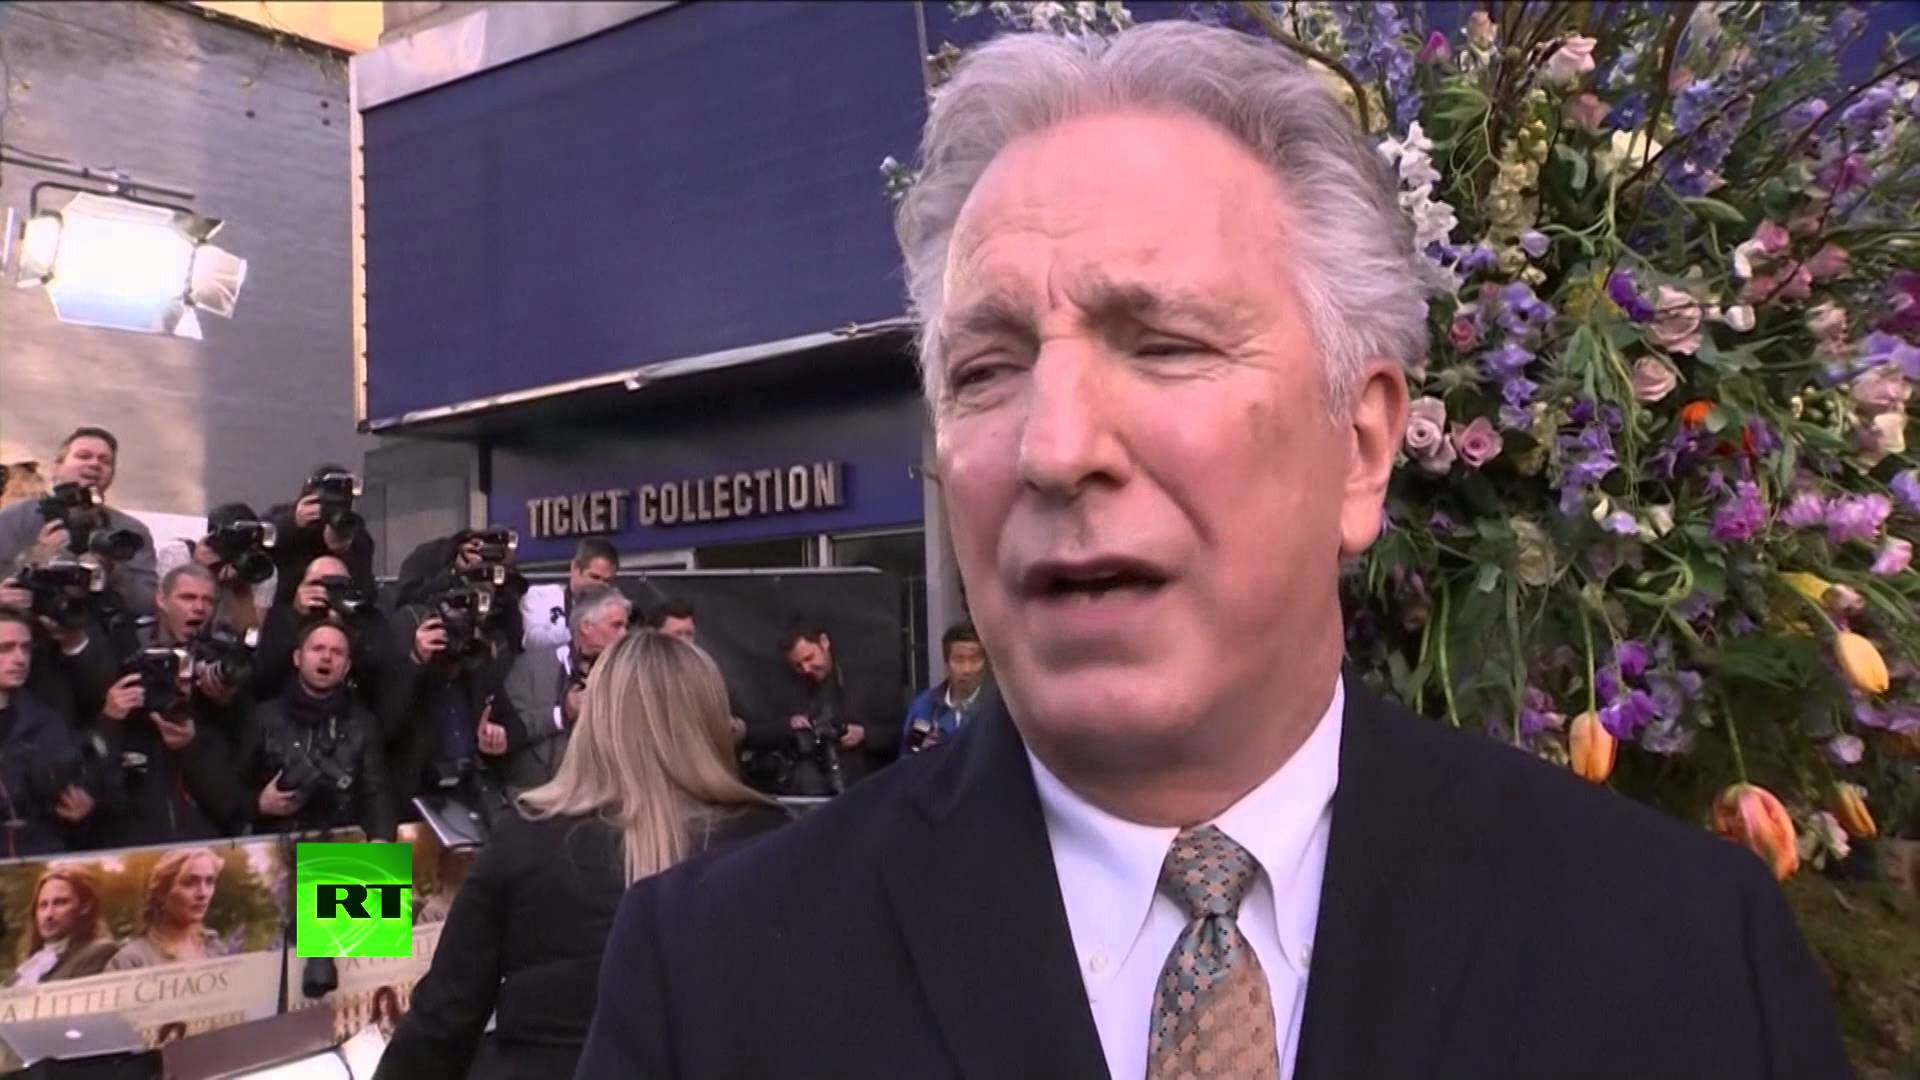 RIP Alan Rickman who died today from cancer 1